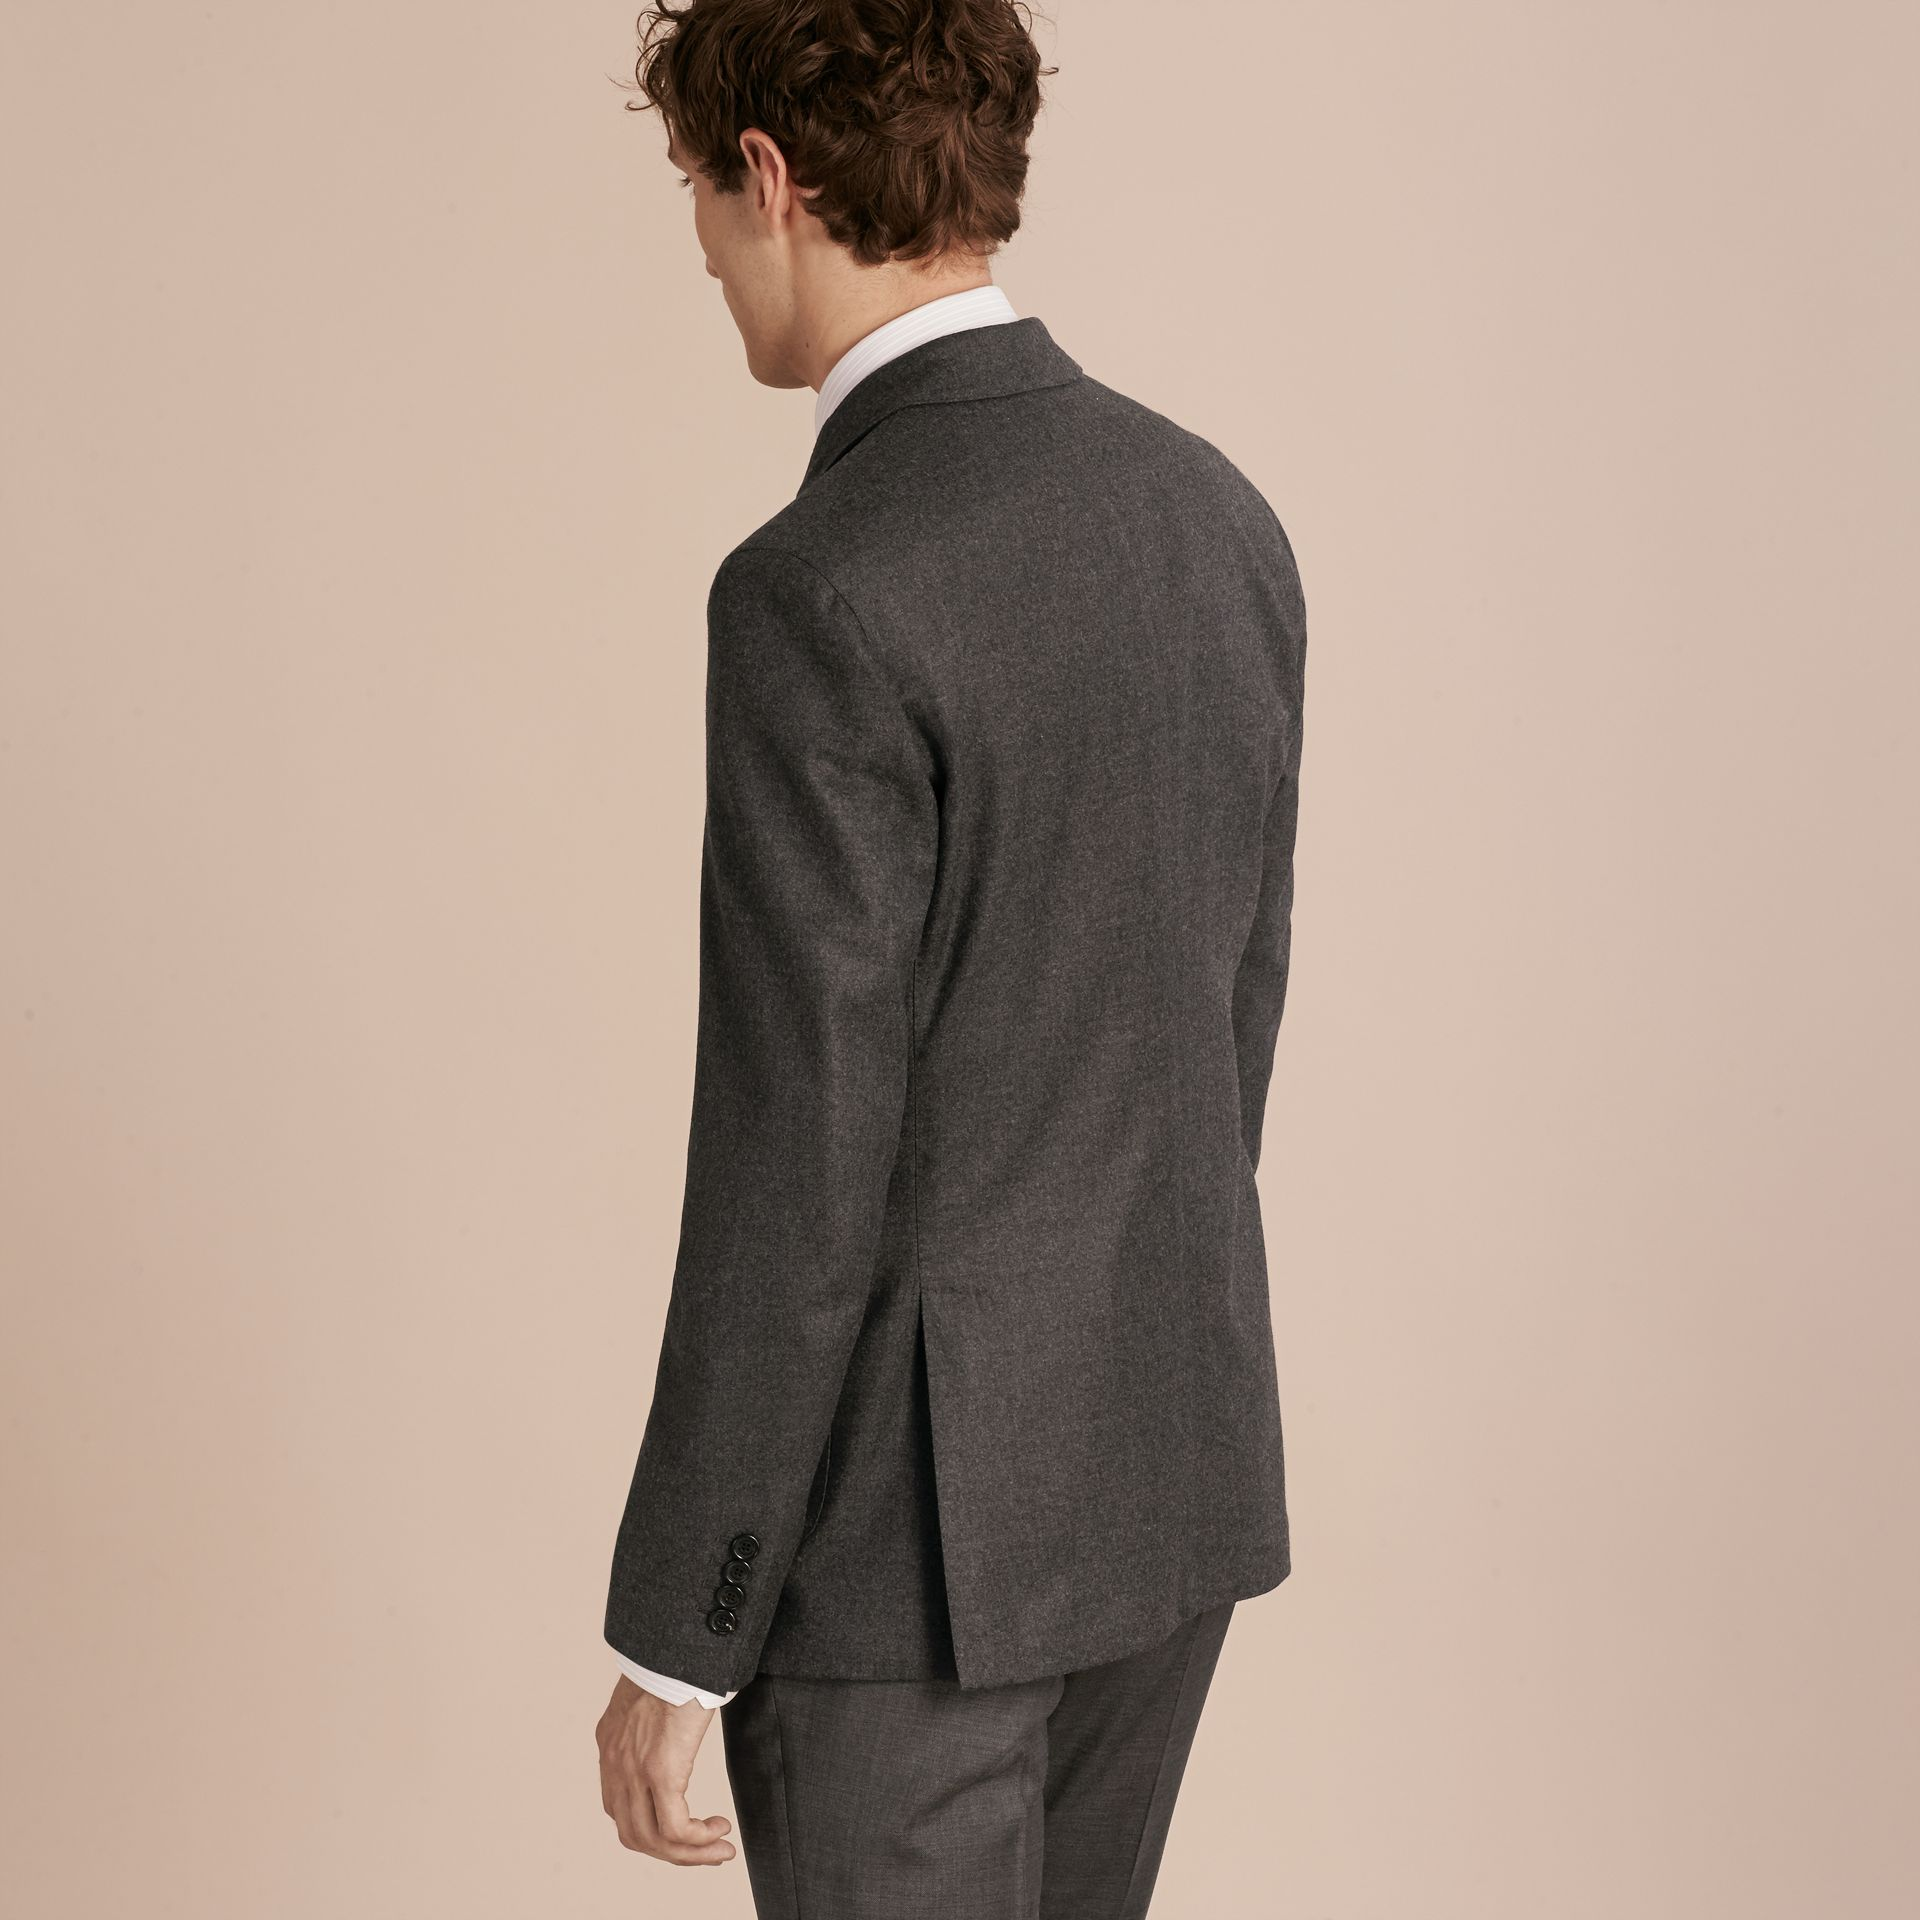 Modern Fit Tailored Wool Jacket - gallery image 3